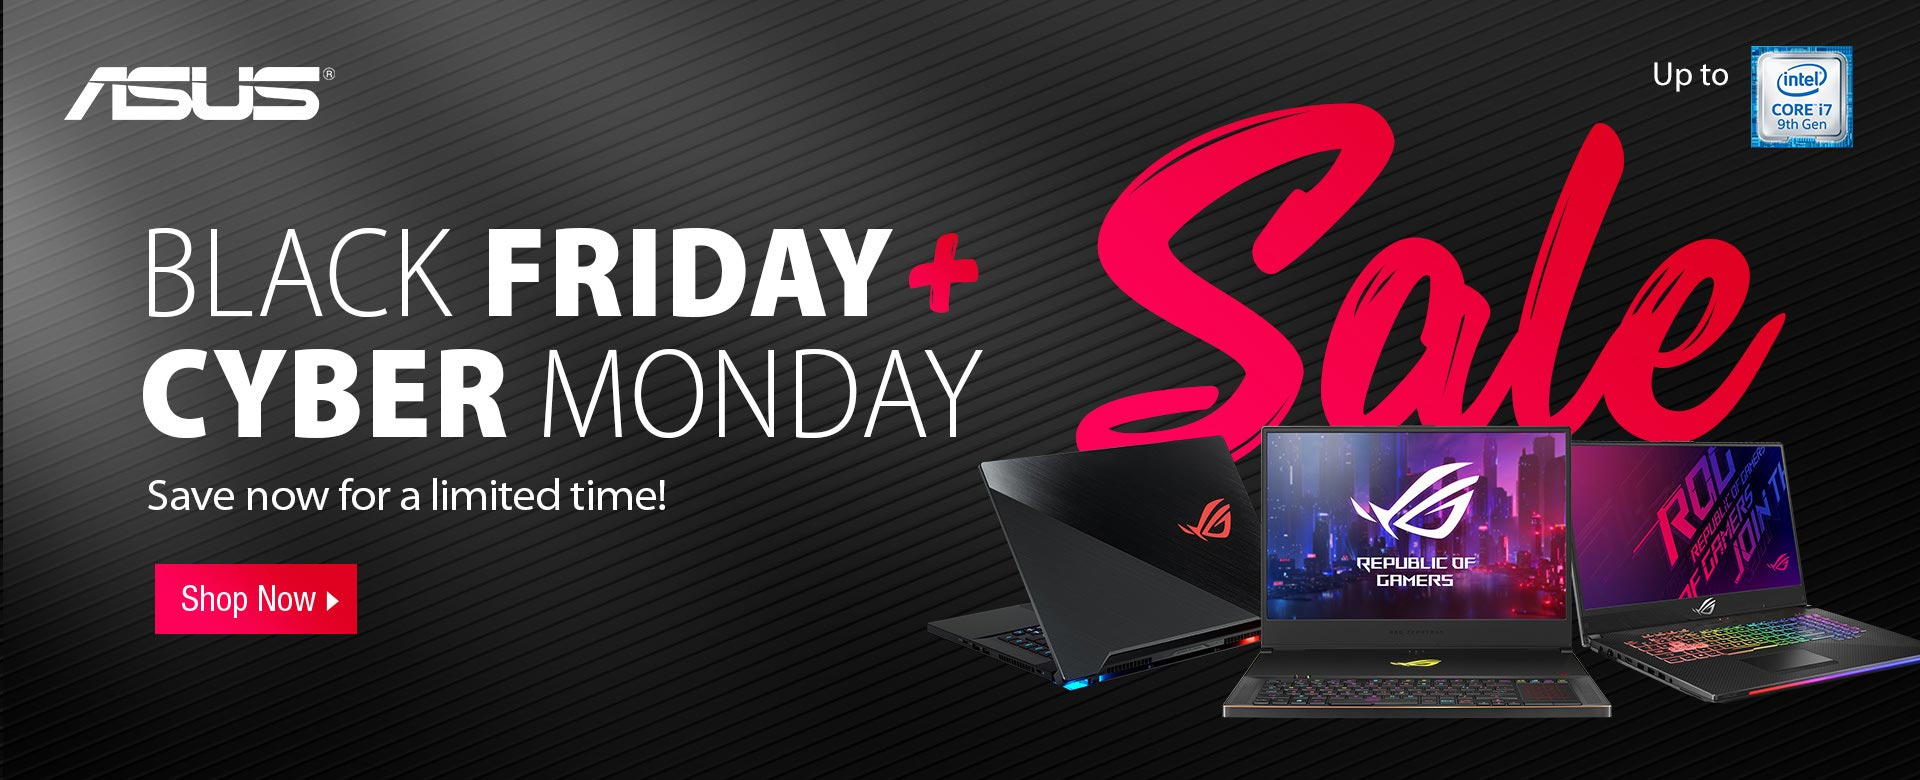 asus-blackfriday-gaminglaptops-1920x780-intel-resized.jpg